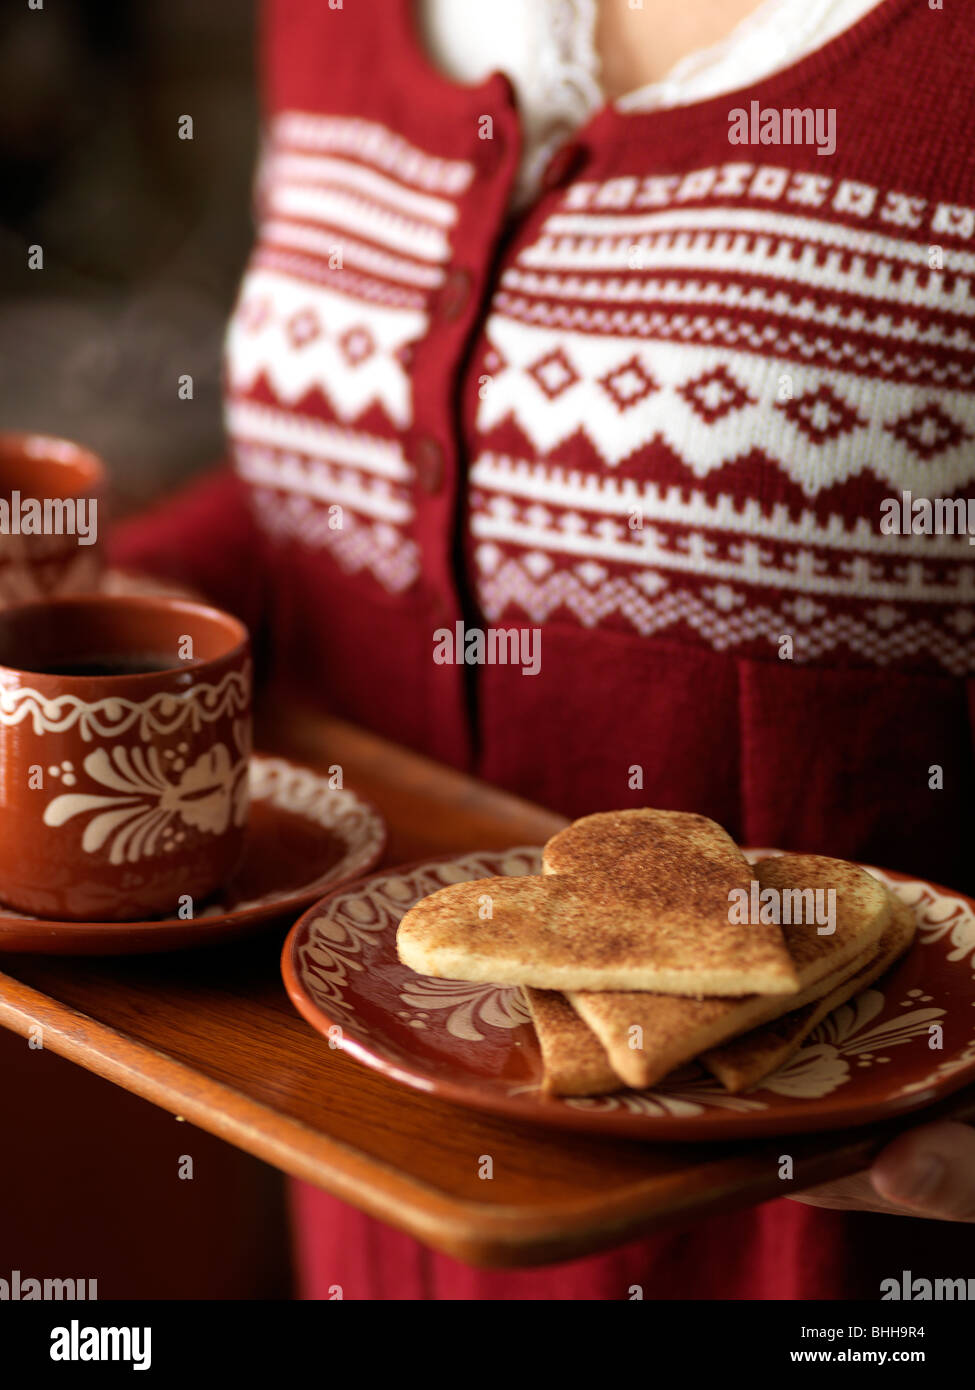 Cinnamon cookies, Sweden. - Stock Image